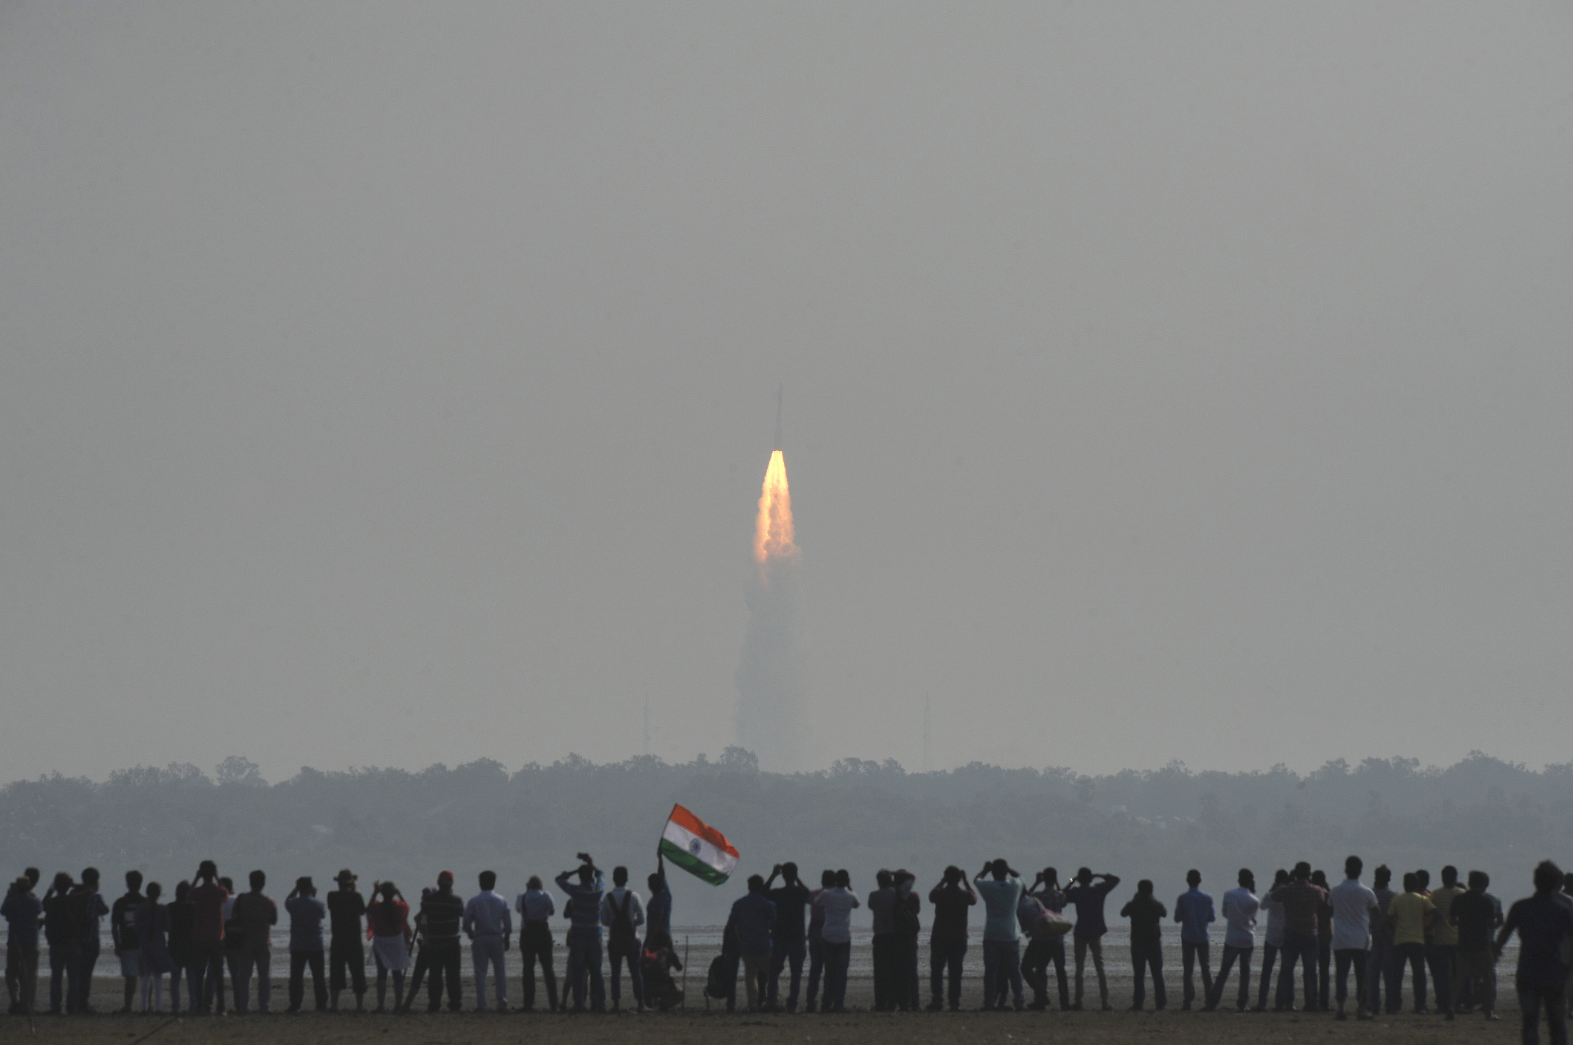 Launch of PSLV-C37 carrying 104 satellites near the spaceport of Sriharikota, Andhra Pradesh. Source: Zuma/Global Look Press